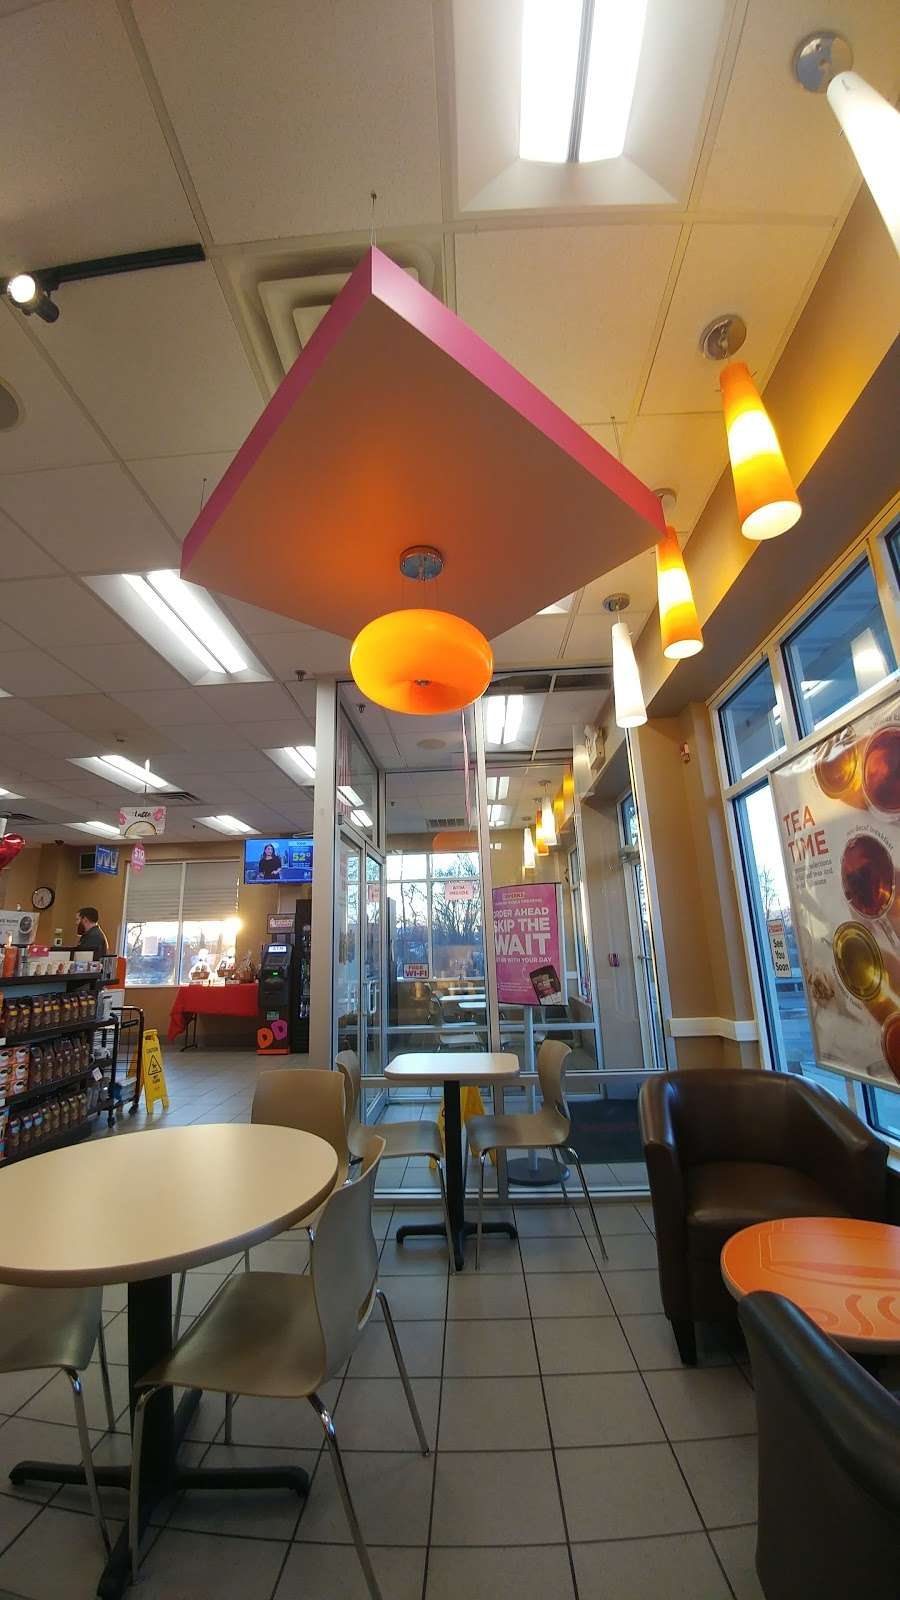 Dunkin Donuts - cafe  | Photo 7 of 10 | Address: 843 Route 33, Freehold, NJ 07728, USA | Phone: (732) 866-8412